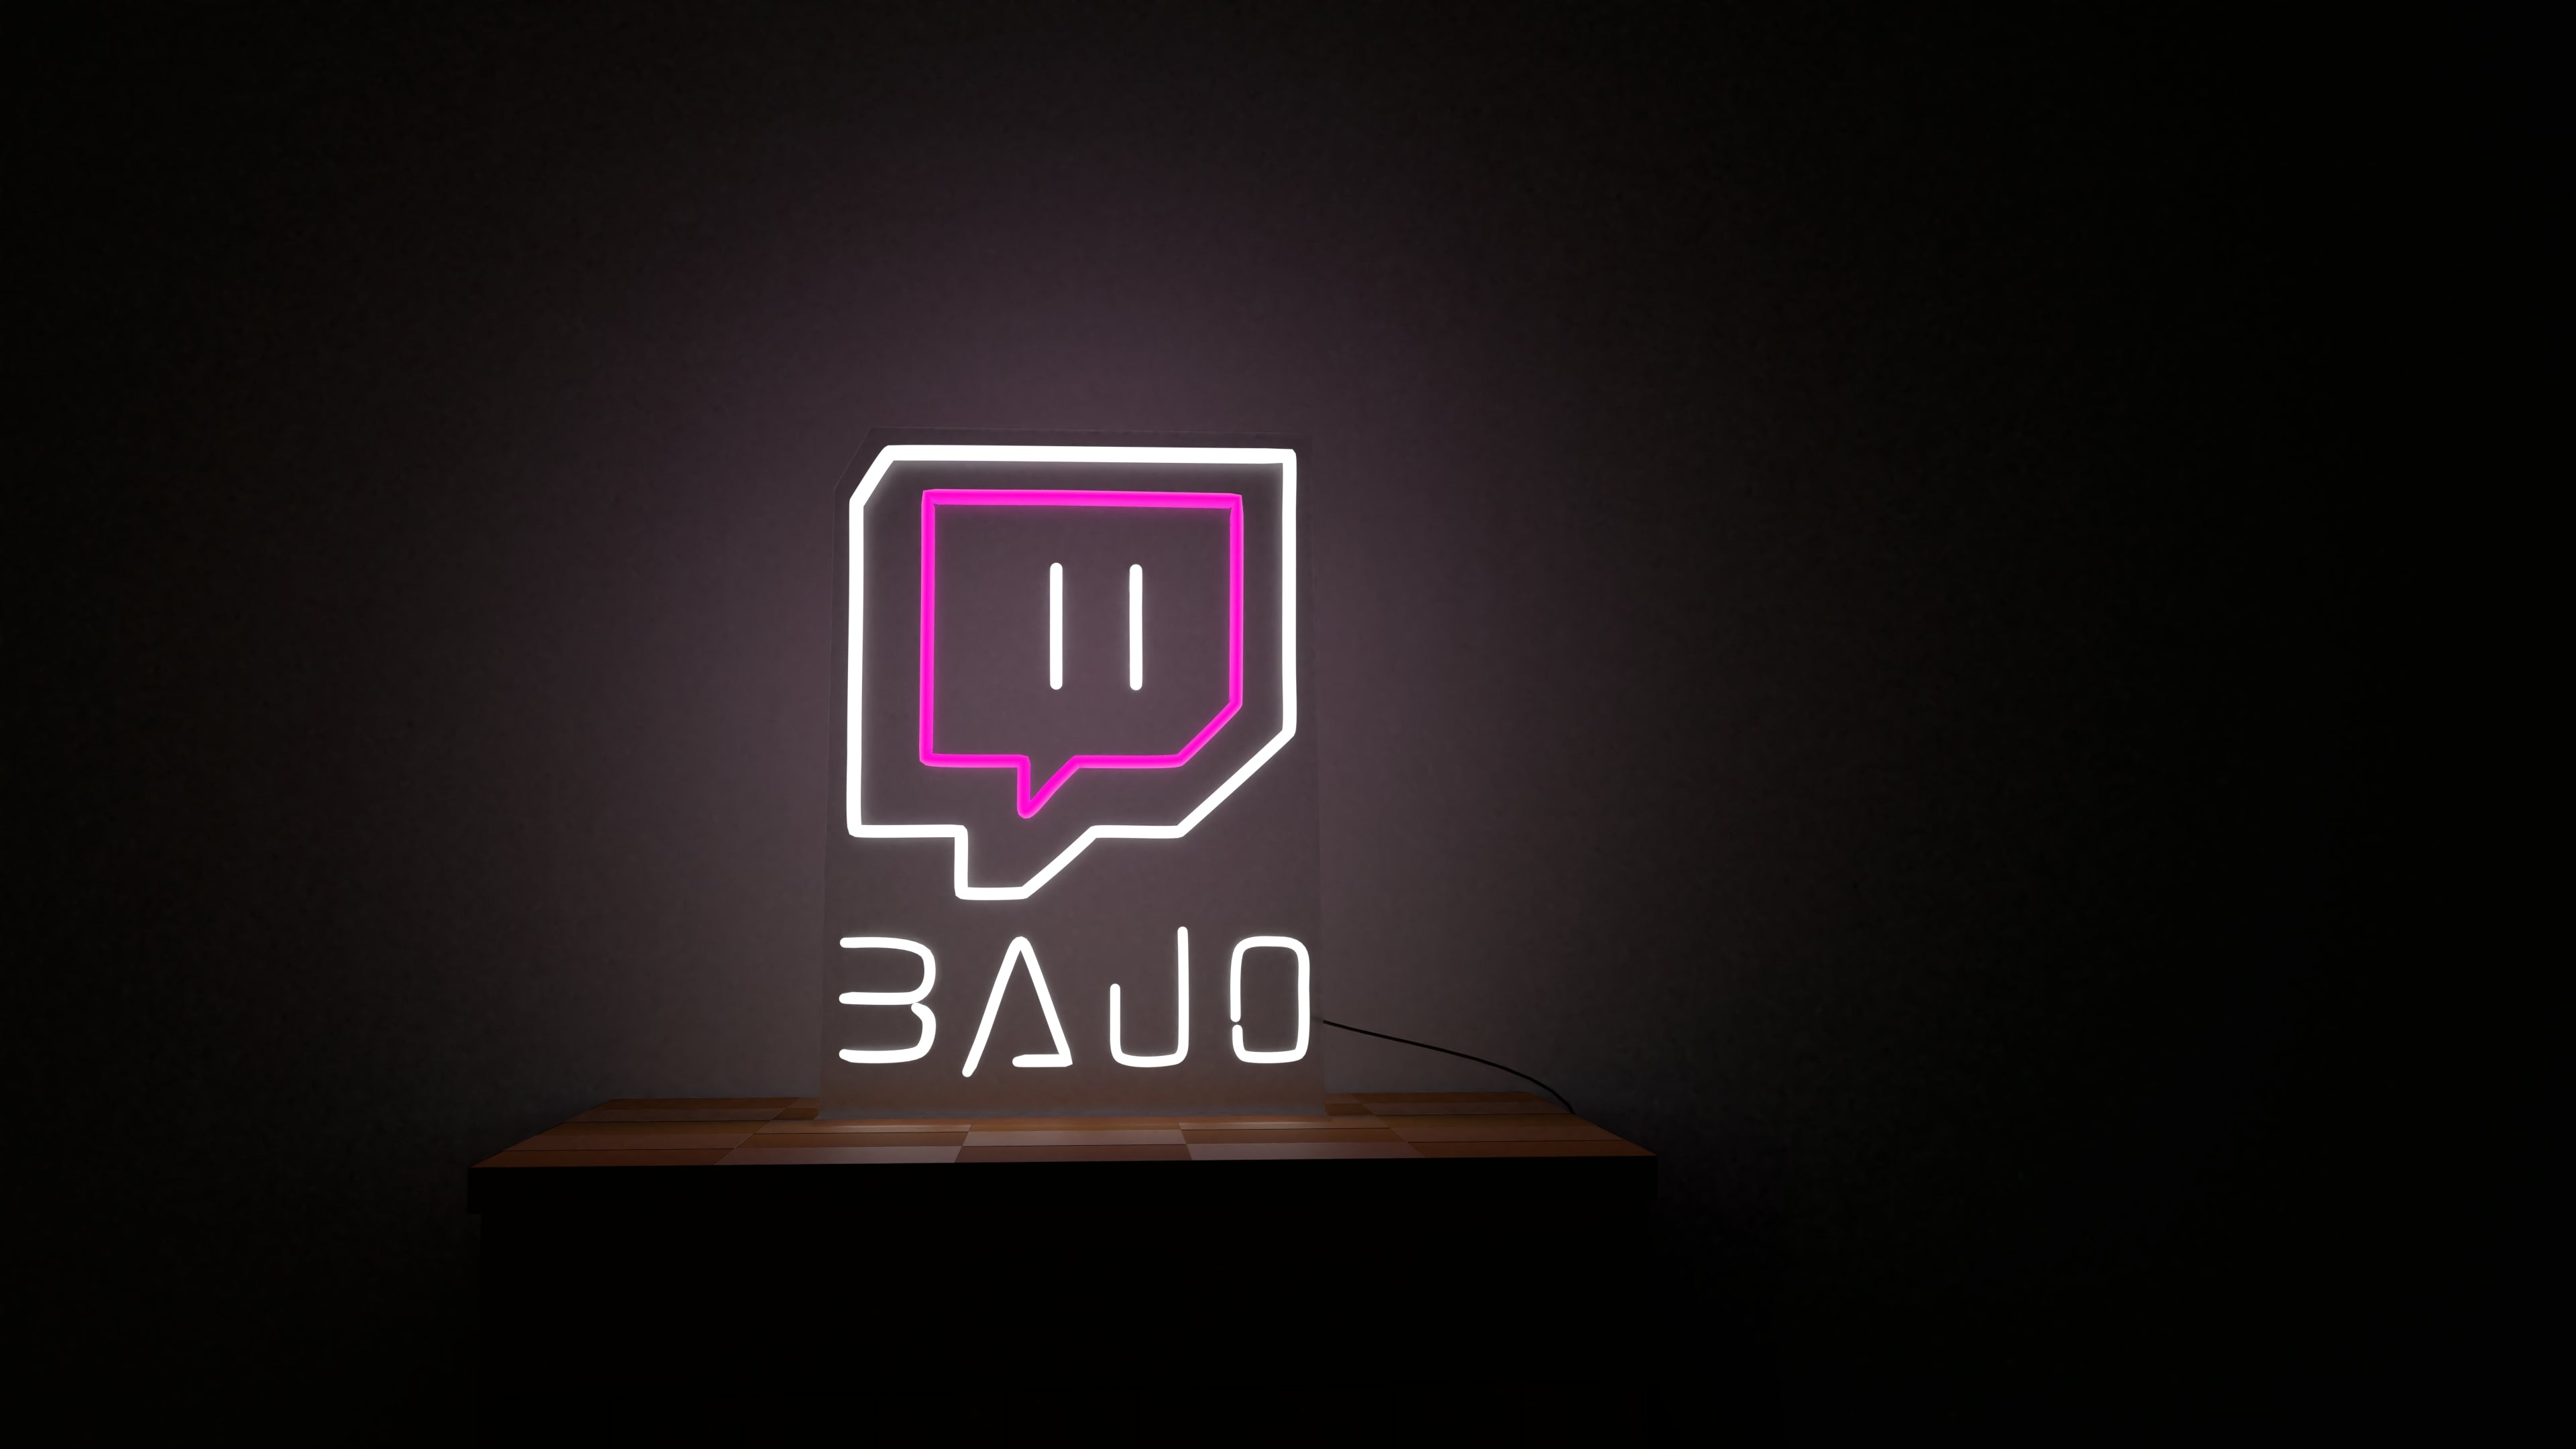 bajo twitch neon sign